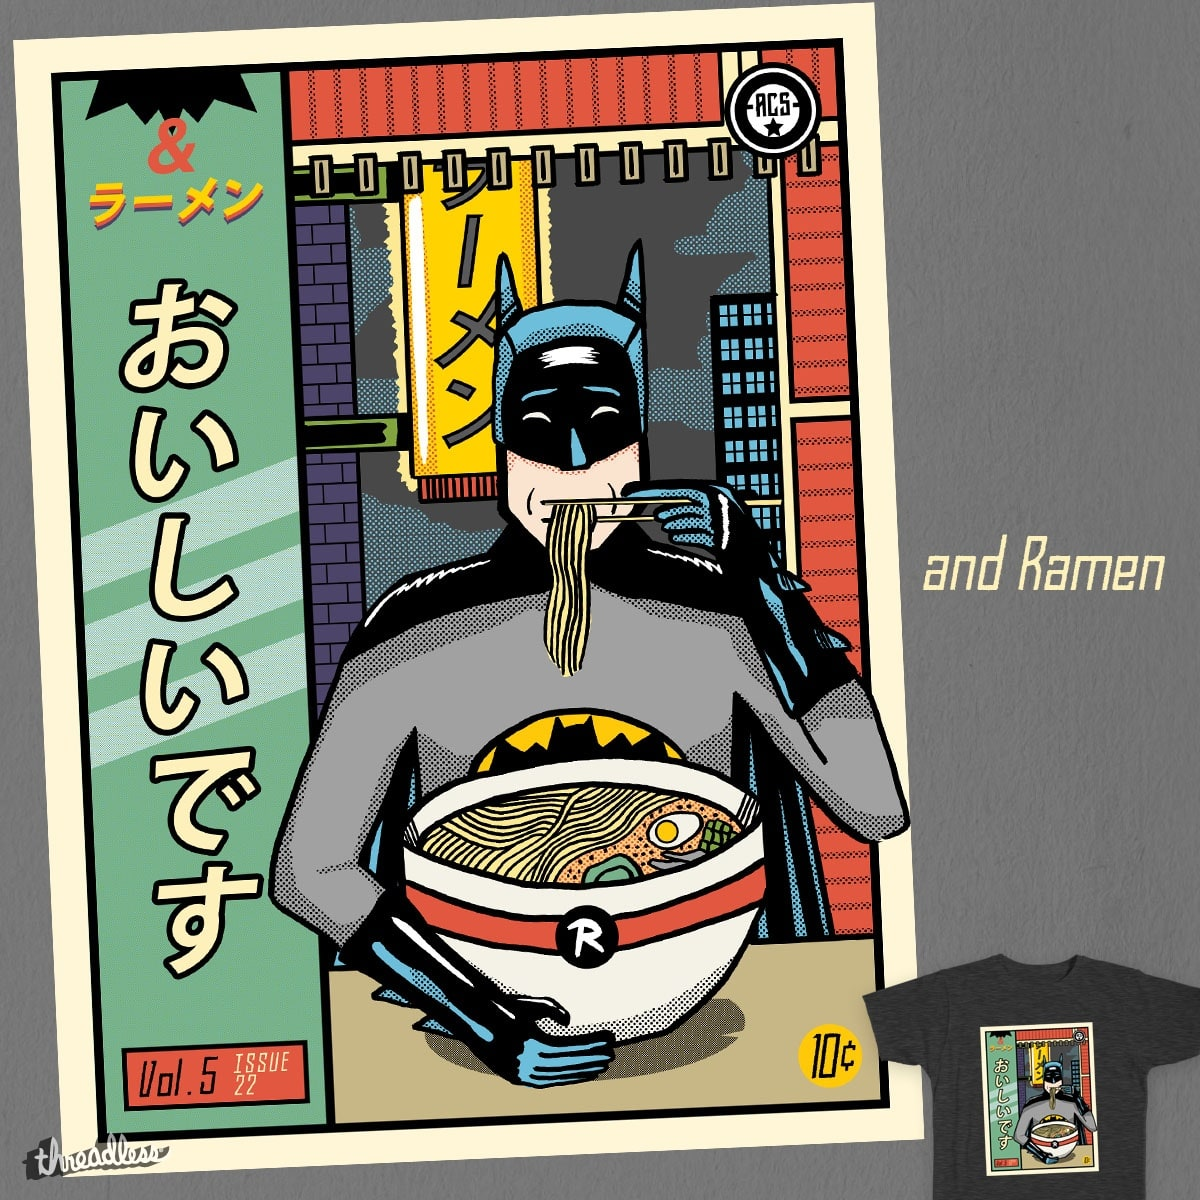 and Ramen by Steger and Sasteger on Threadless